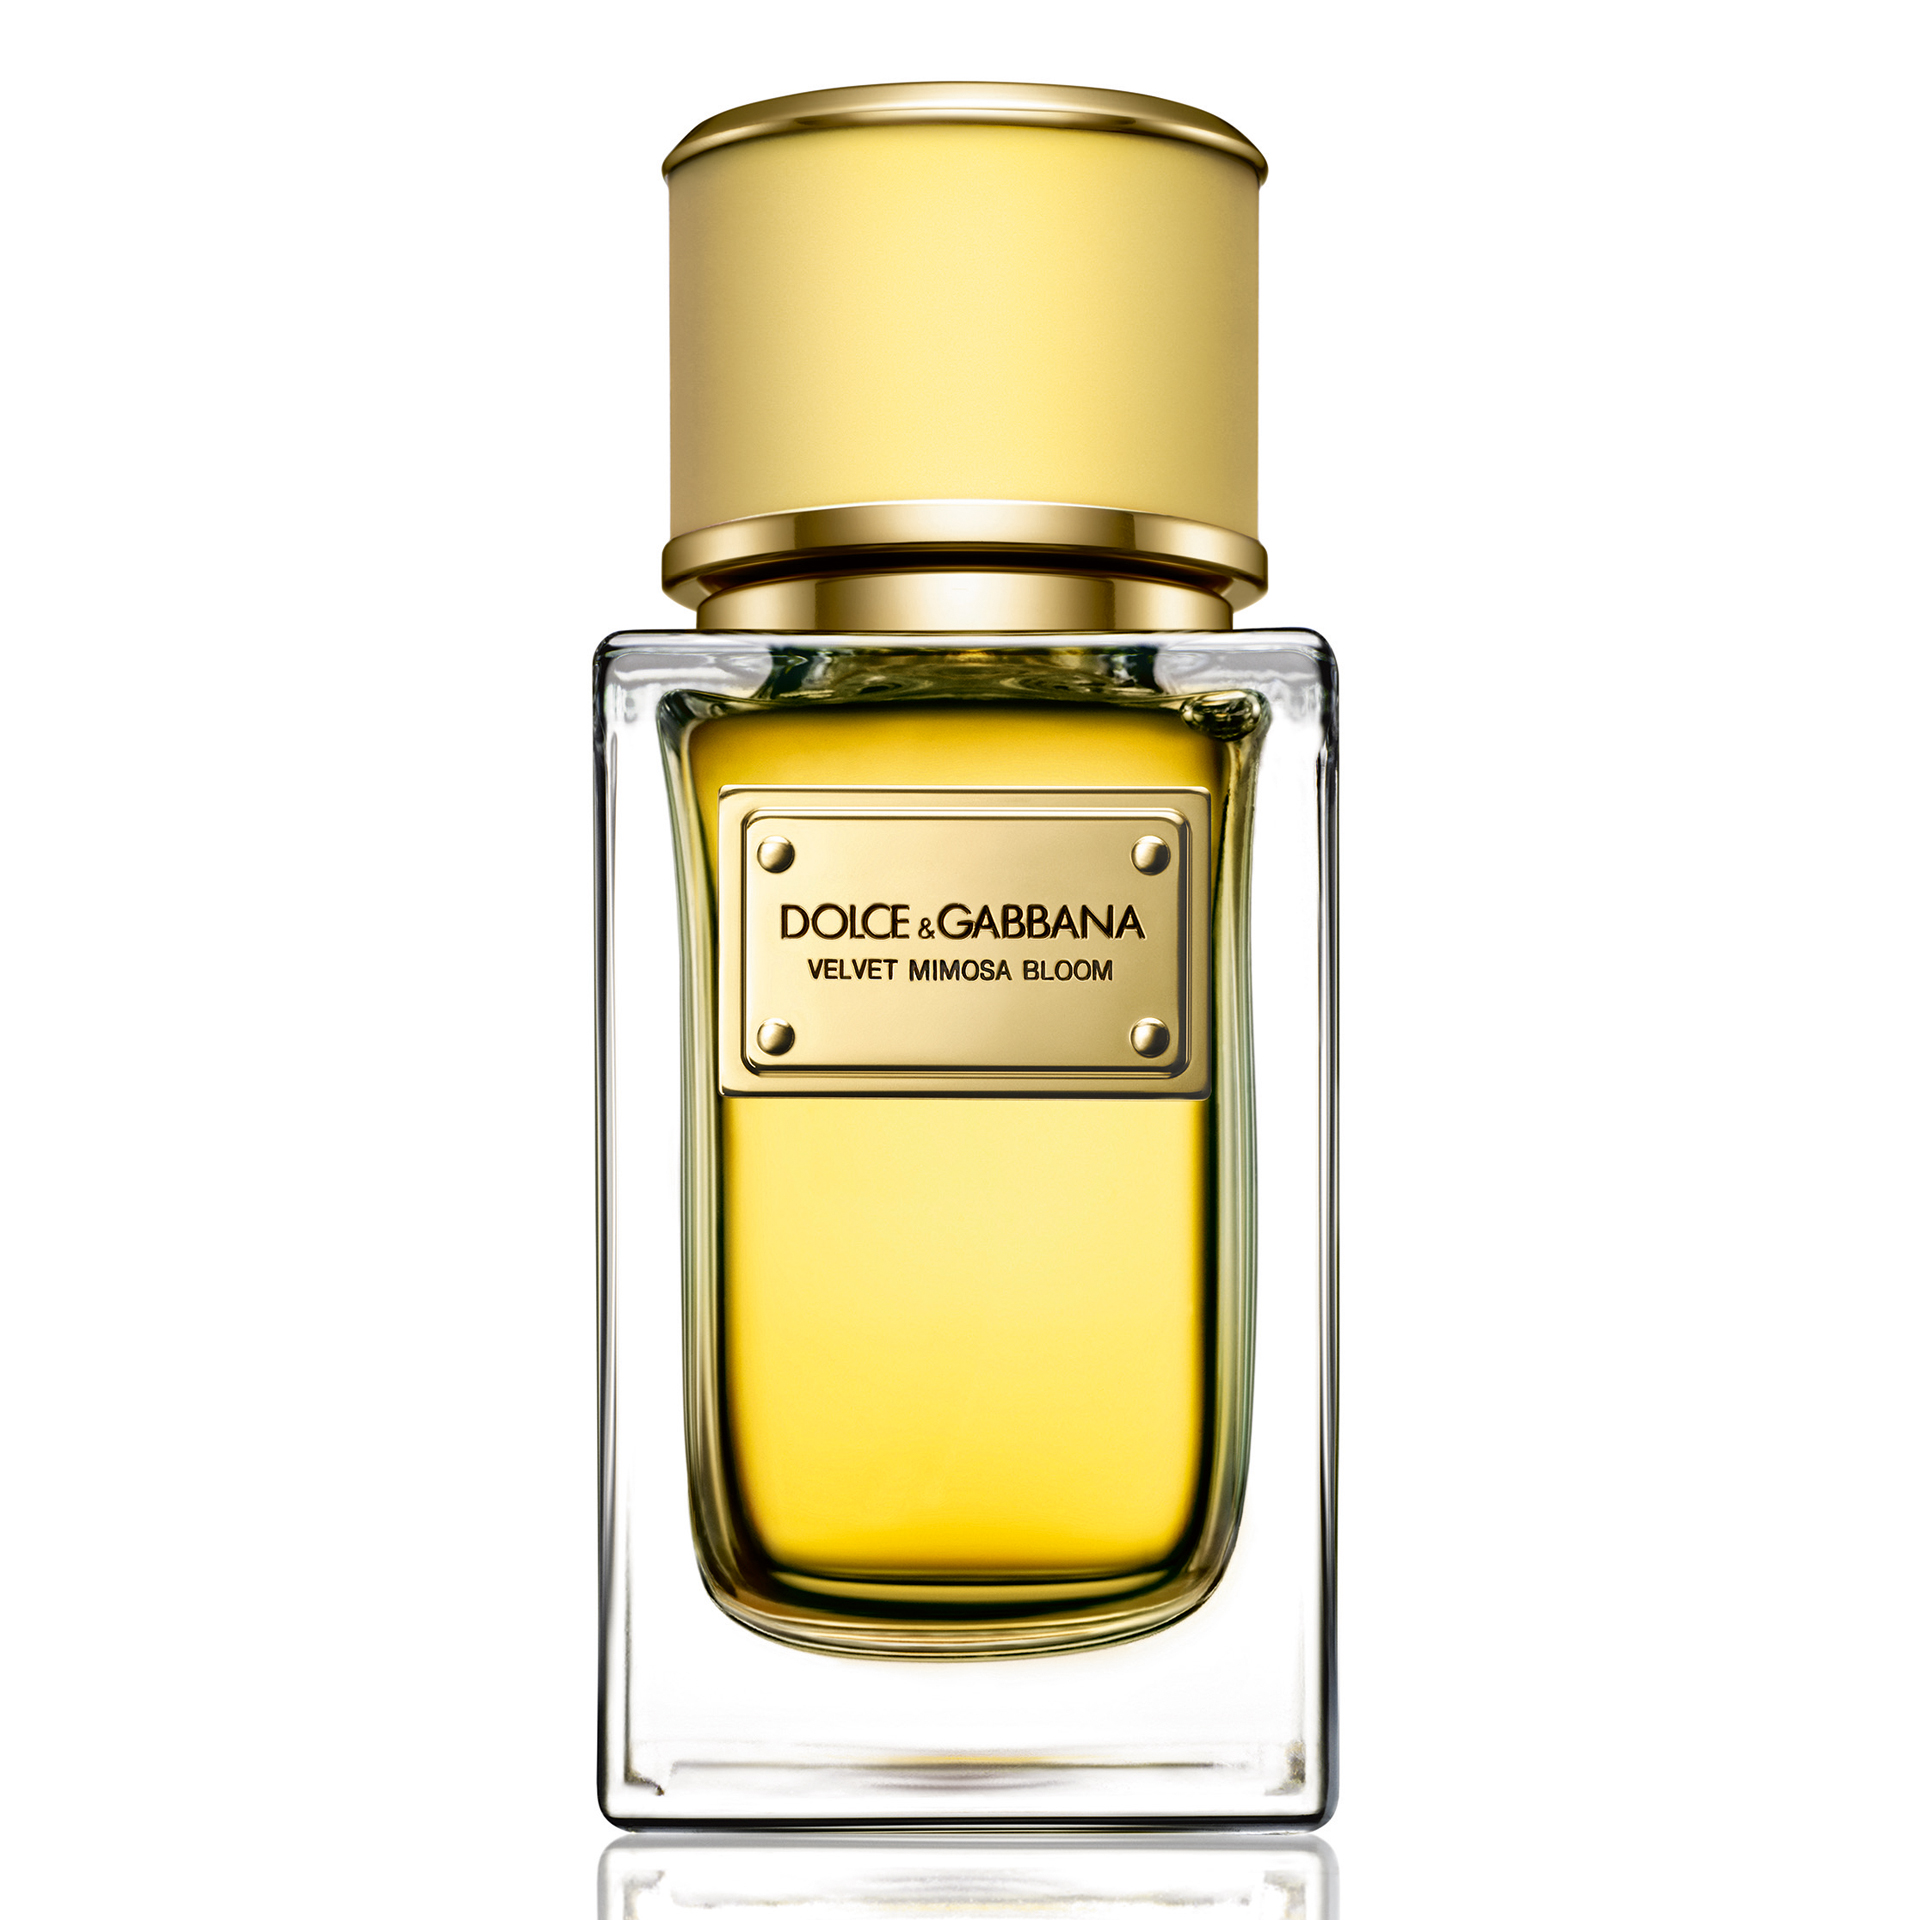 Dolce Gabbana Completes Its Velvet Collection With Two New Absolute Feminime An Homage To Feminine Sensuality Allure And Beauty Mimosa Bloom Brings Heady Notes Of Harmoniously Blended Narcissus